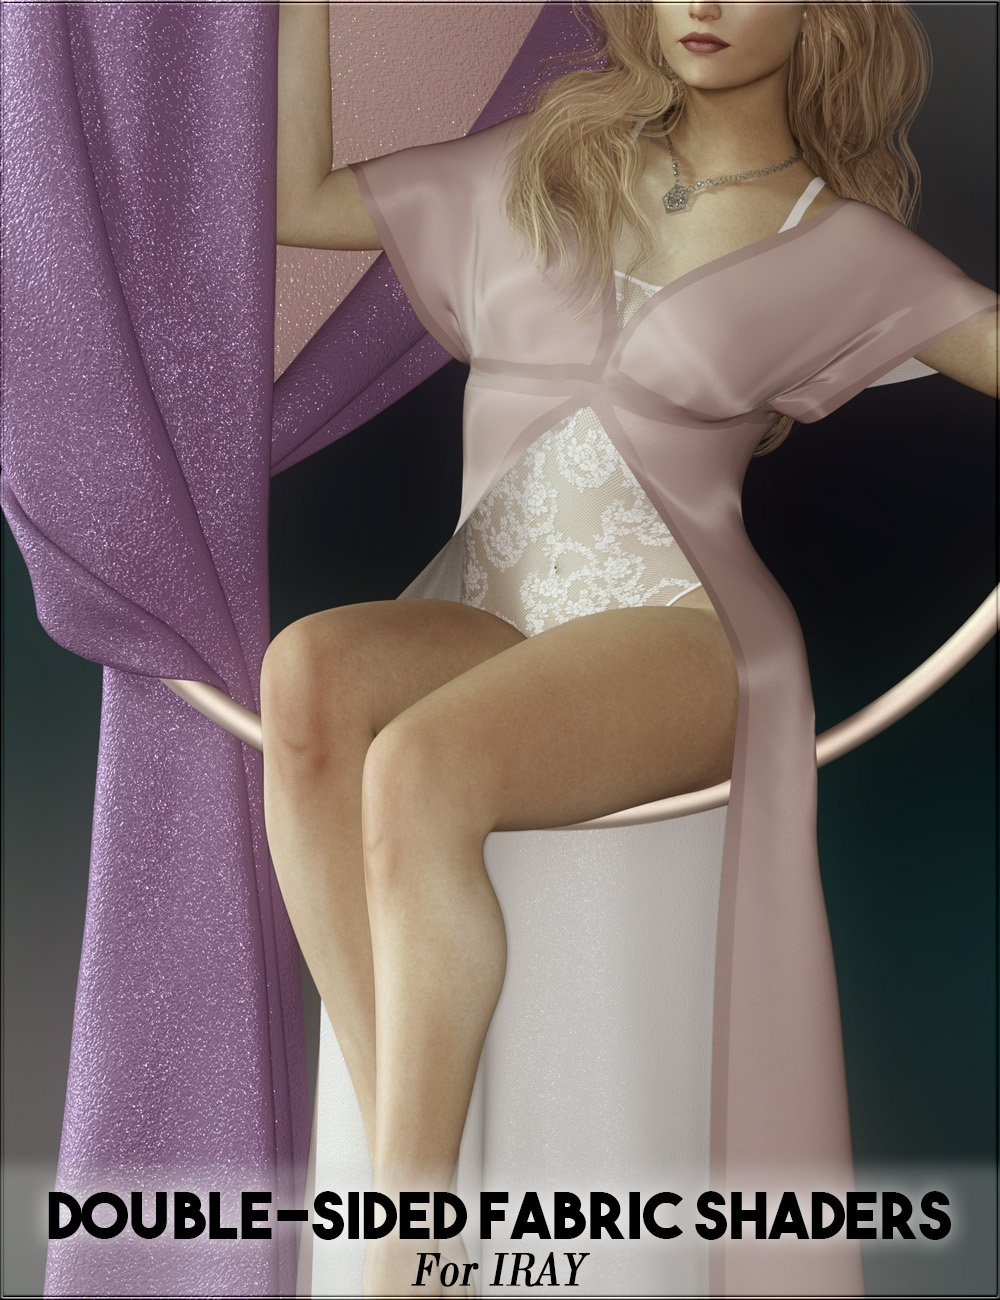 Double-Sided Iray Fabric Shaders by: vyktohria, 3D Models by Daz 3D